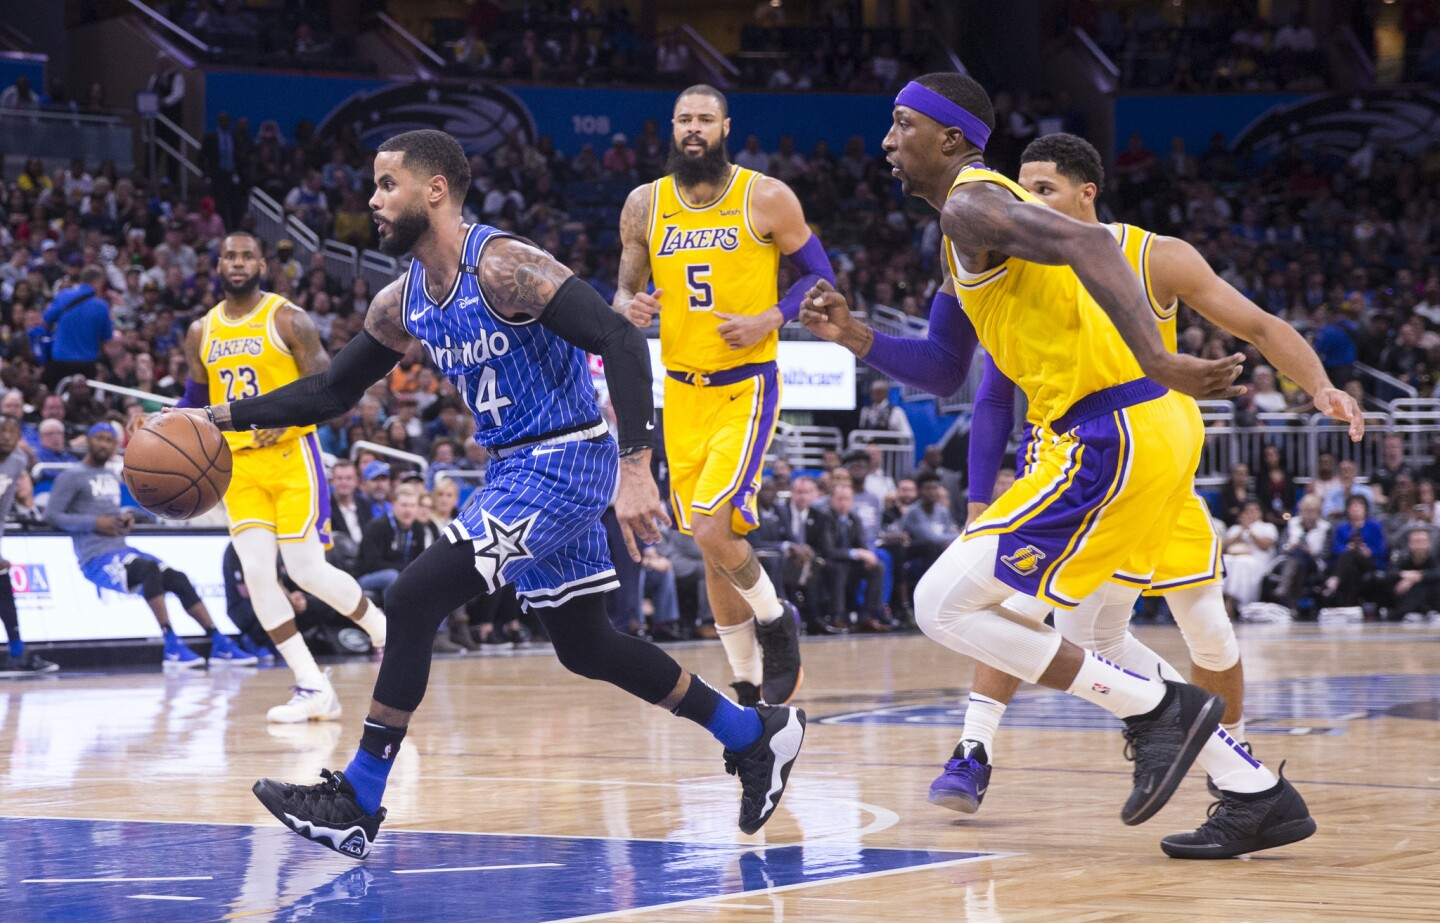 Orlando Magic guard D.J. Augustin (14) dribbled past Los Angeles Lakers guard Kentavious Caldwell-Pope, right, and center Tyson Chandler (5) during the second half of an NBA basketball game, Saturday, Nov. 17, 2018, in Orlando, Fla. The Magic won 130-117. (AP Photo/Willie J. Allen Jr.)